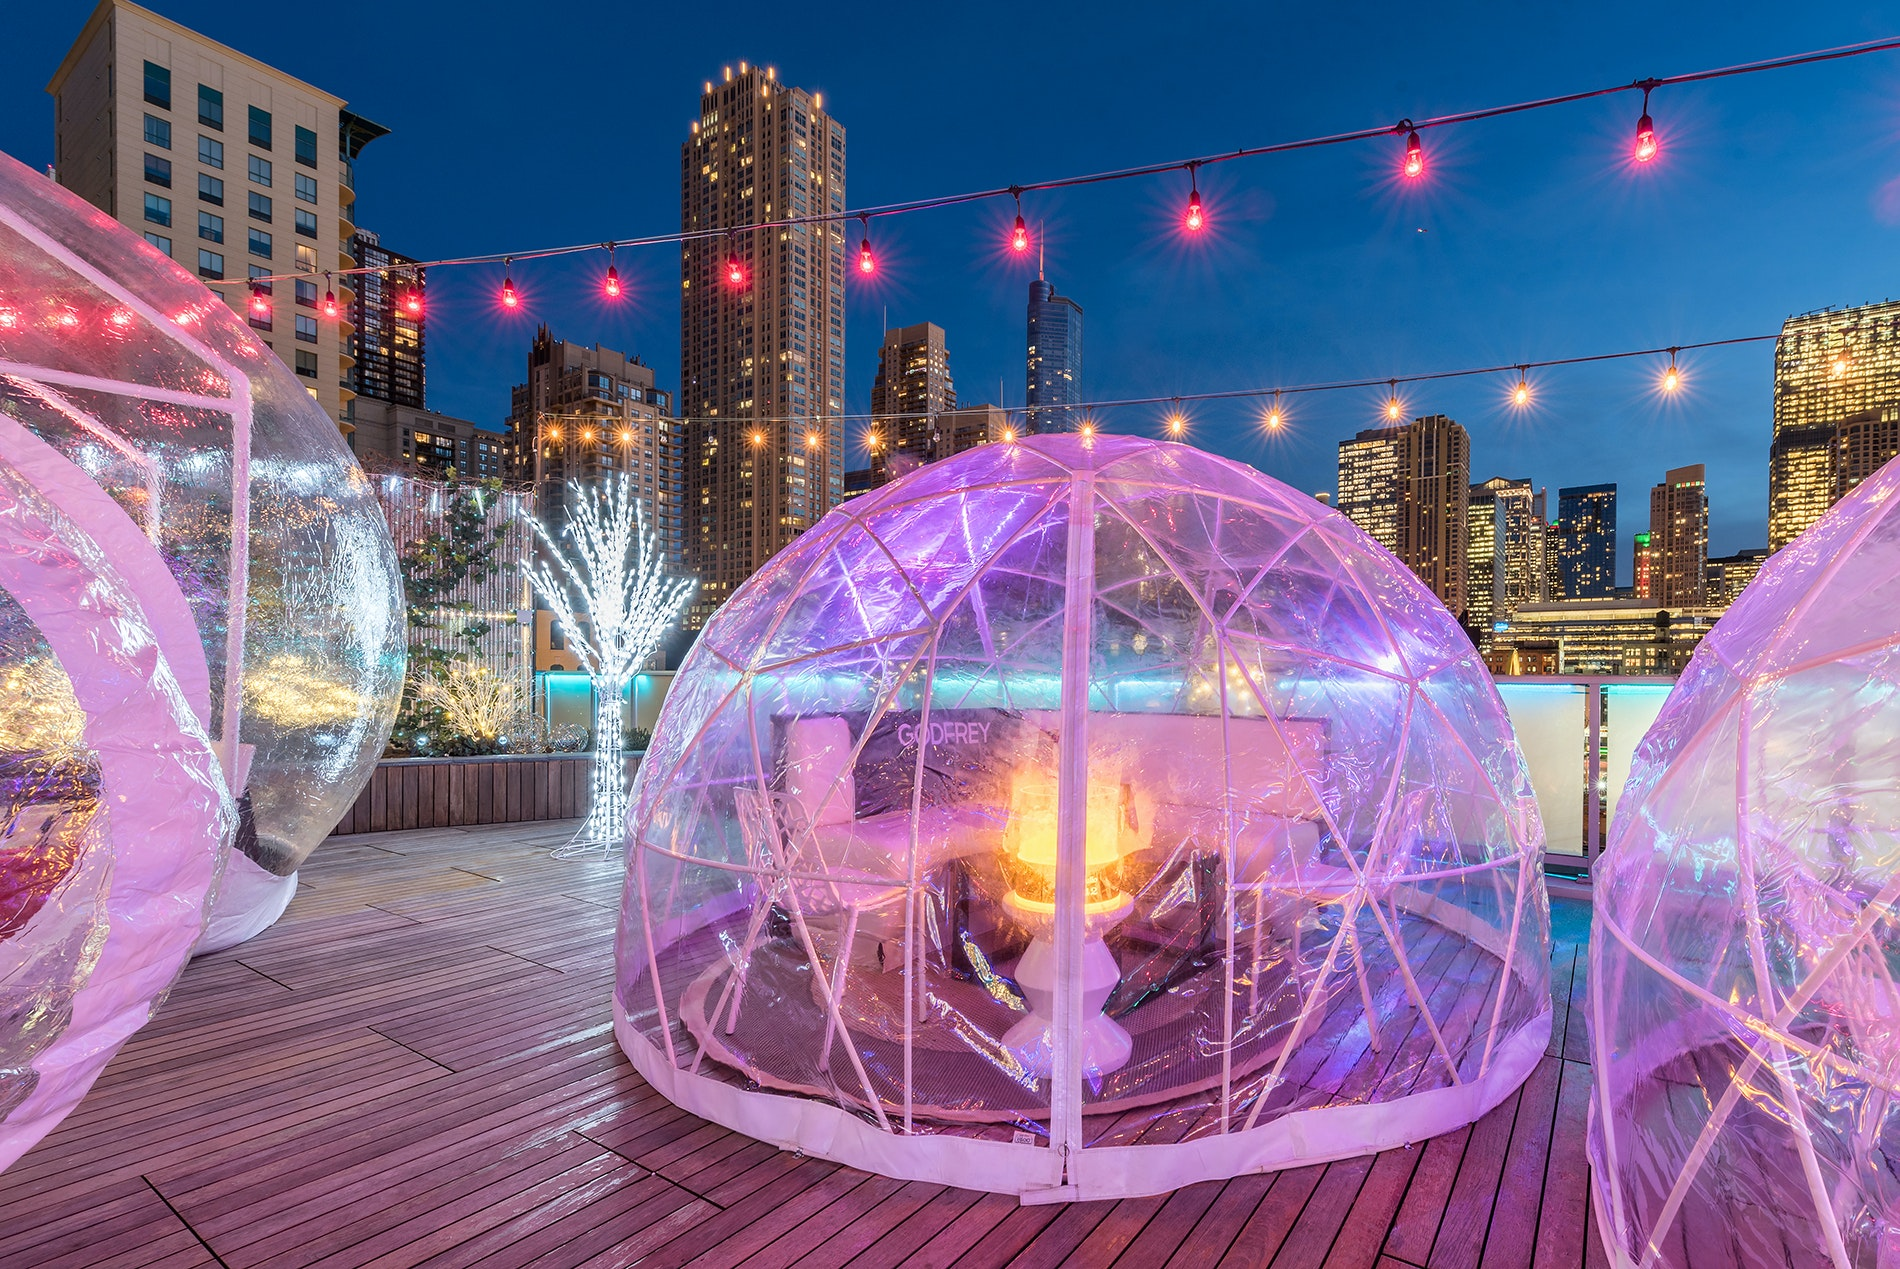 Take in Chicago's skyline from heated igloos atop The Godfrey Hotel.